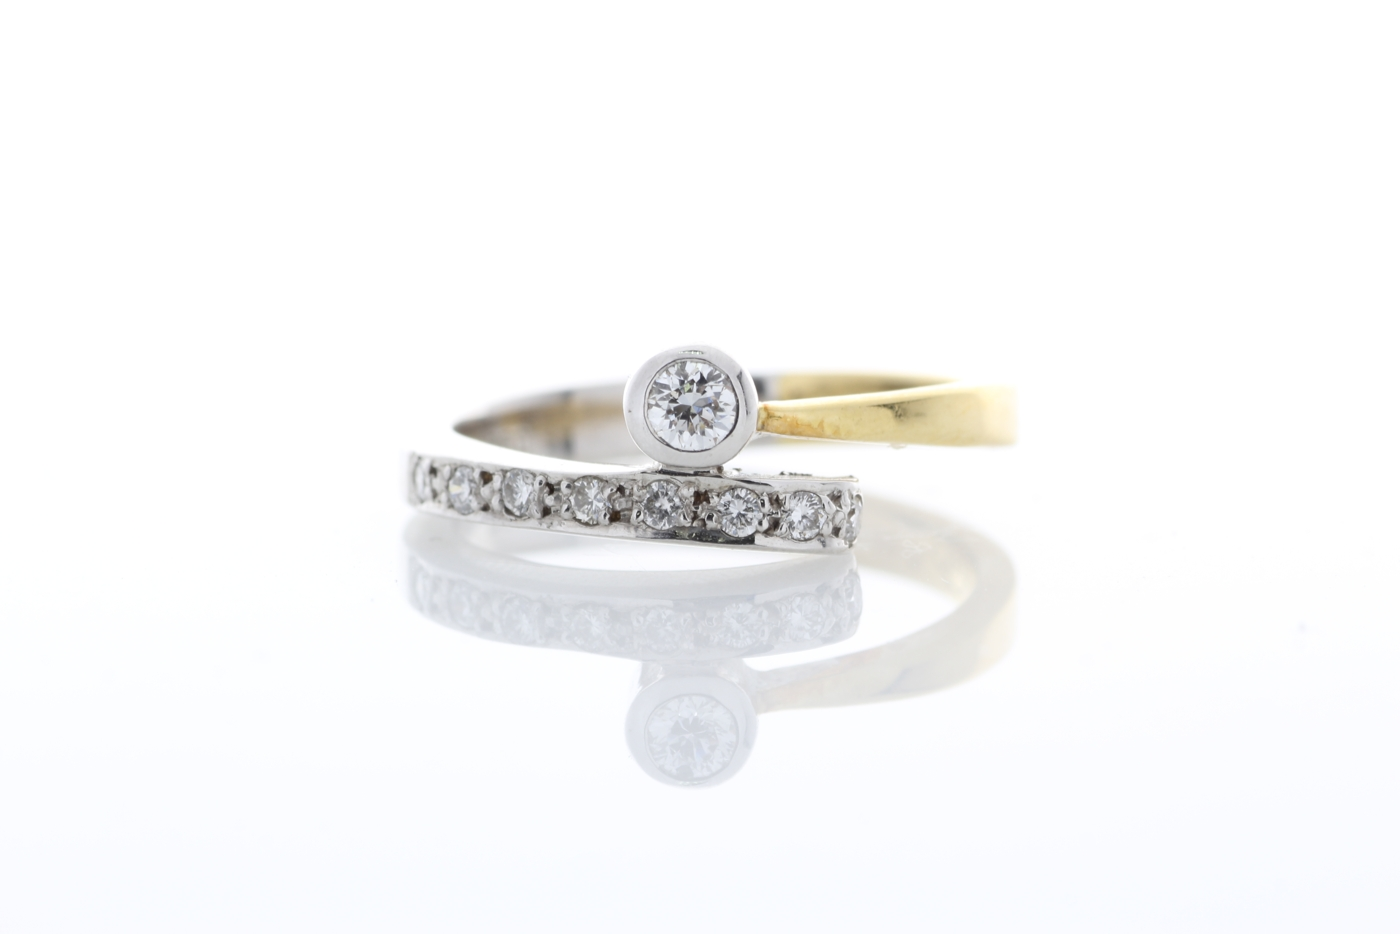 Lot 3 - 18ct Stone Set Shoulders Diamond Ring 0.11 Carats